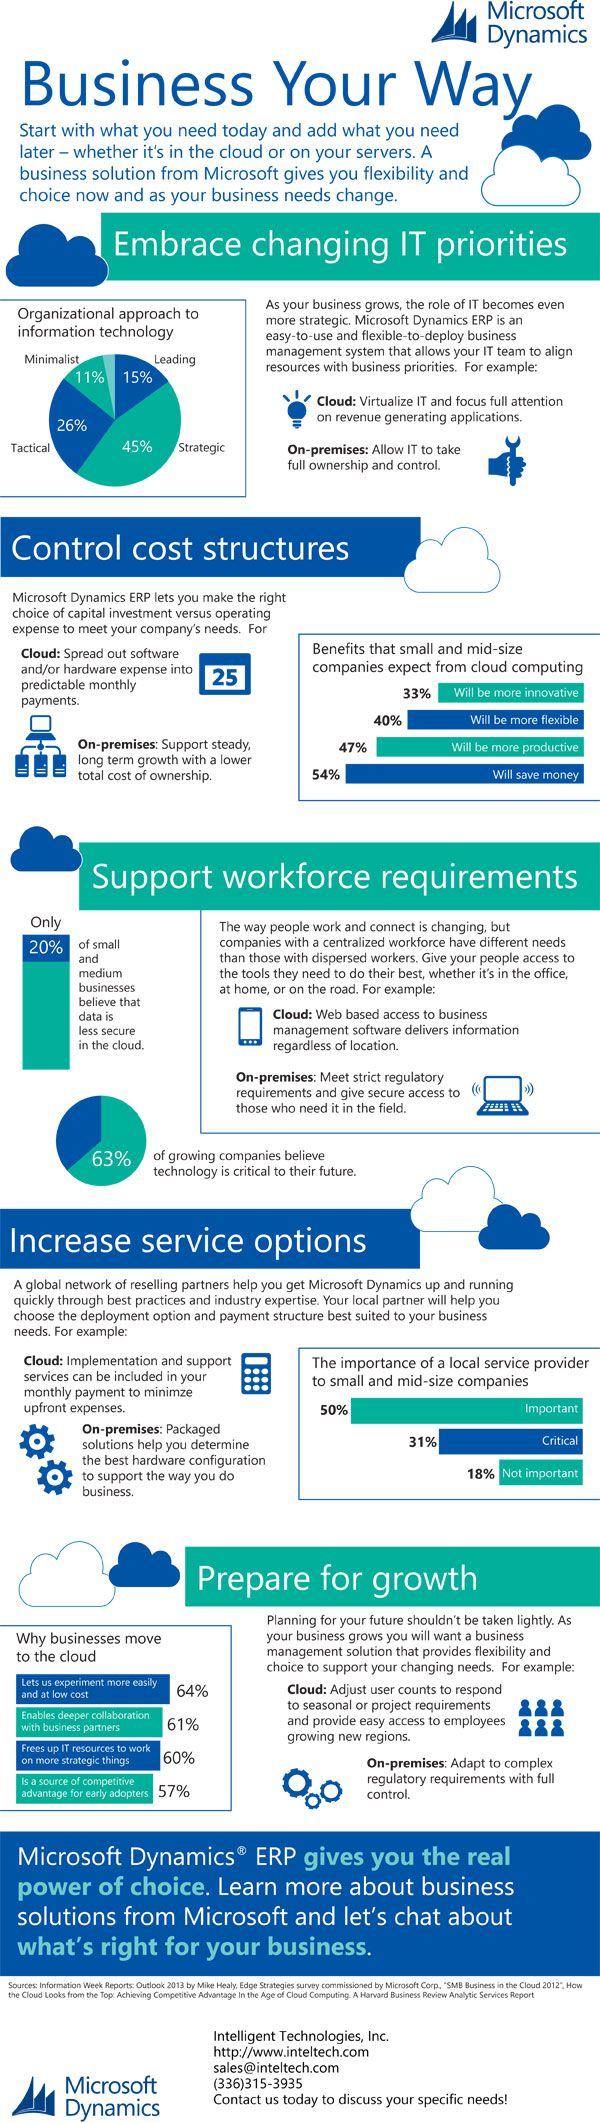 18 best microsoft dynamics images on pinterest microsoft are you looking for a new small business erp solution this infographic will baditri Gallery